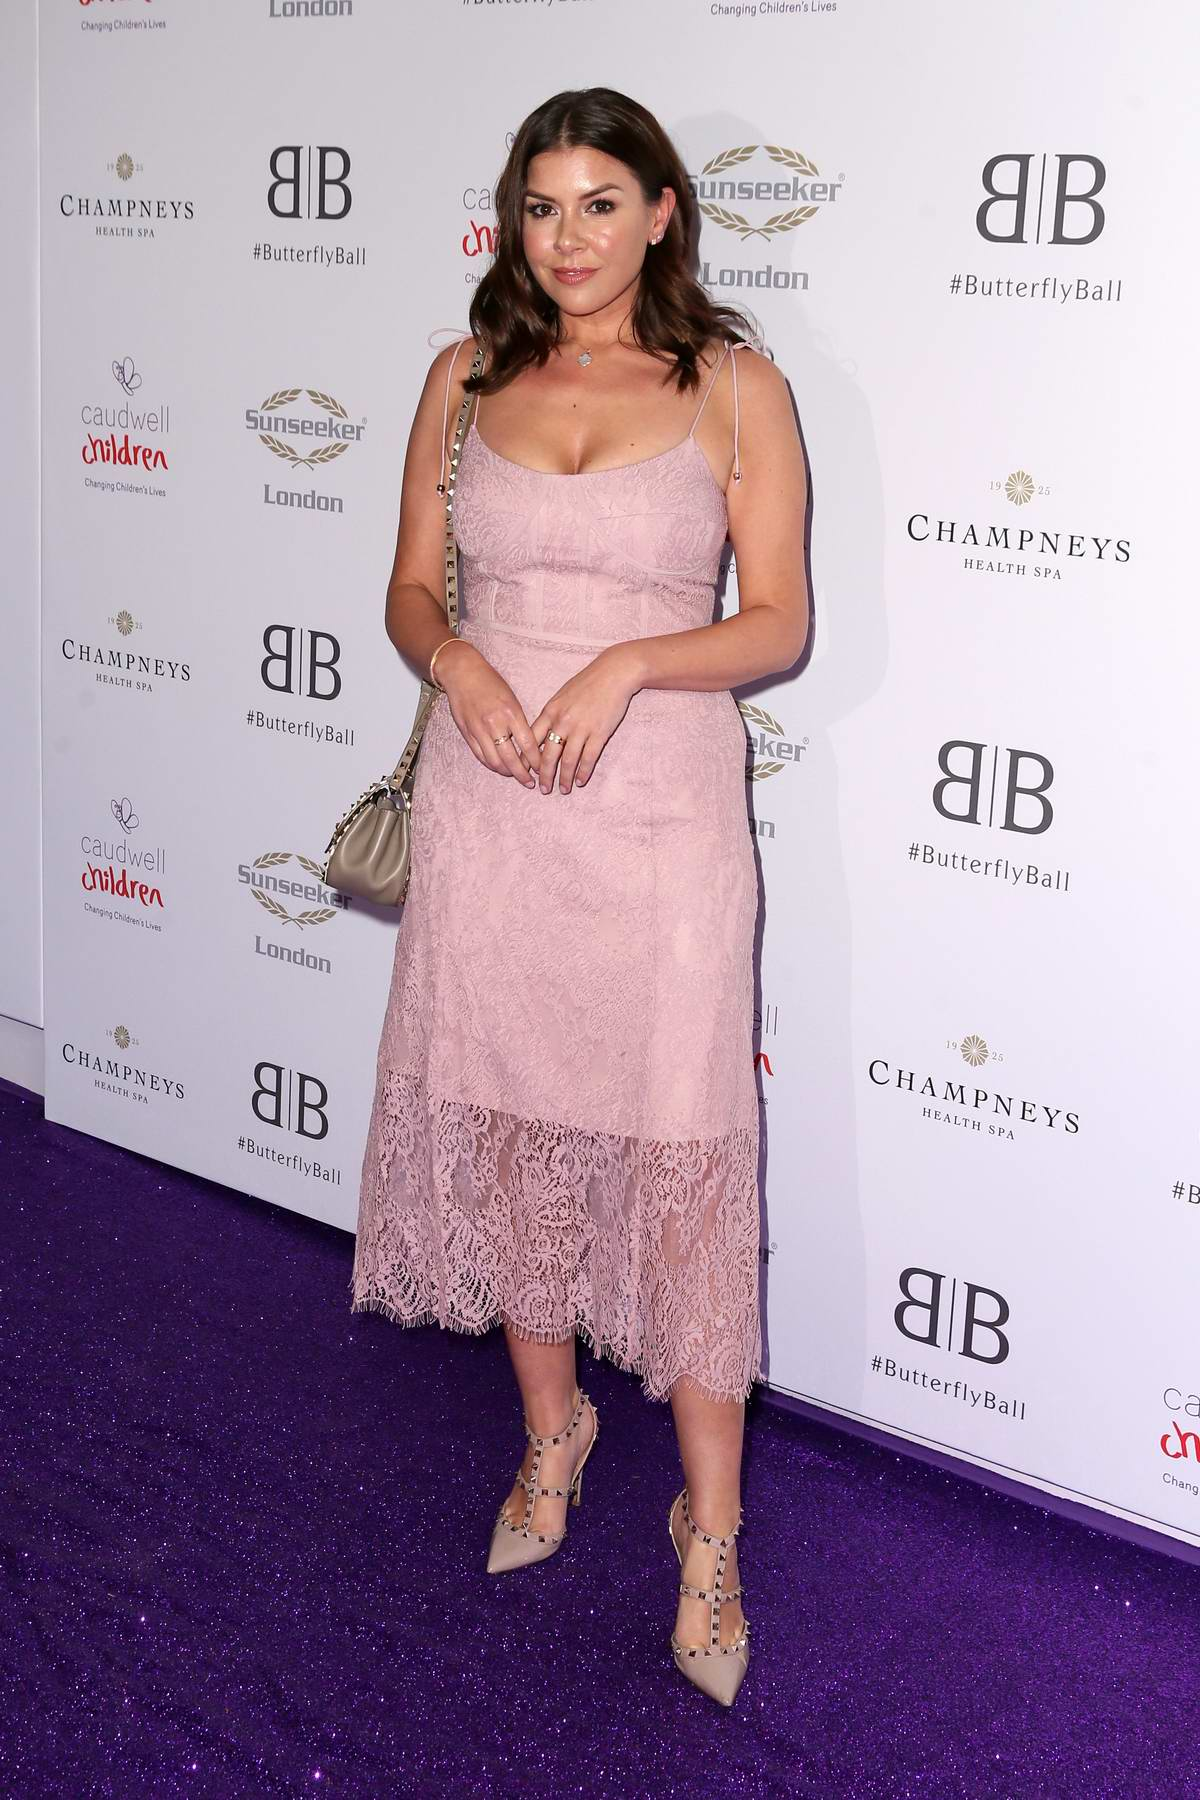 Imogen Thomas attends the Caudwell Children Butterfly Ball charity event at the Grosvenor House in London, UK